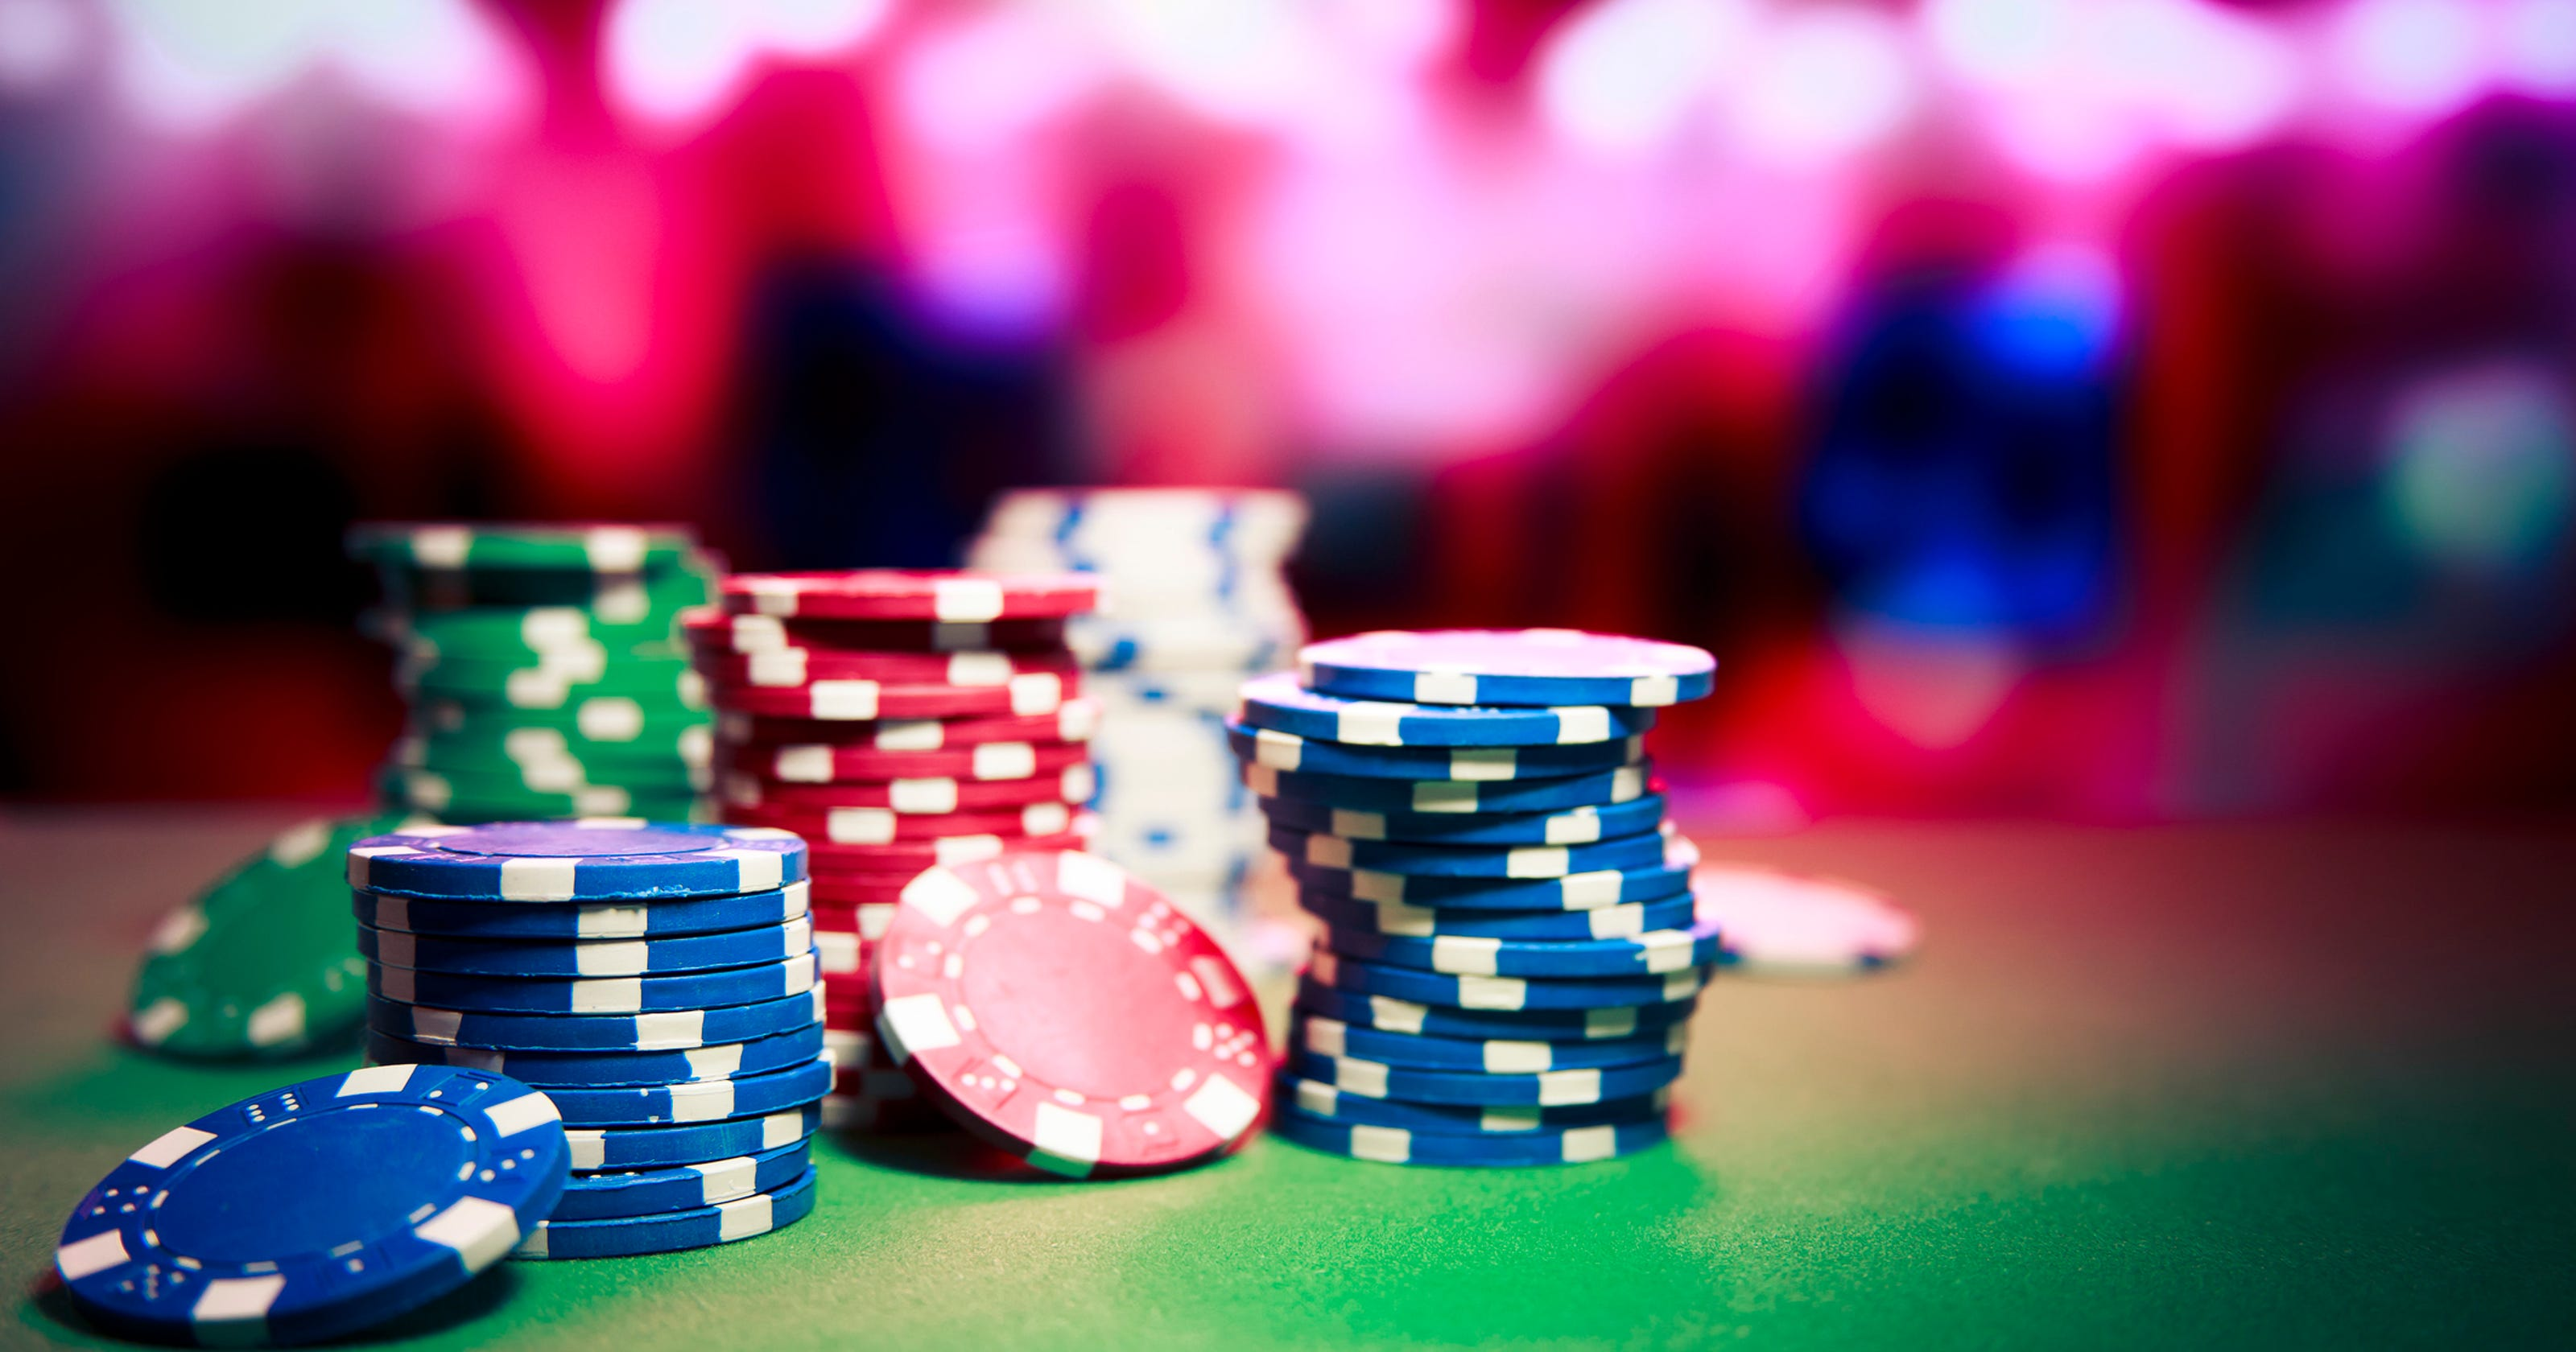 Naples-Fort Myers poker room in peril from Seminole Tribe